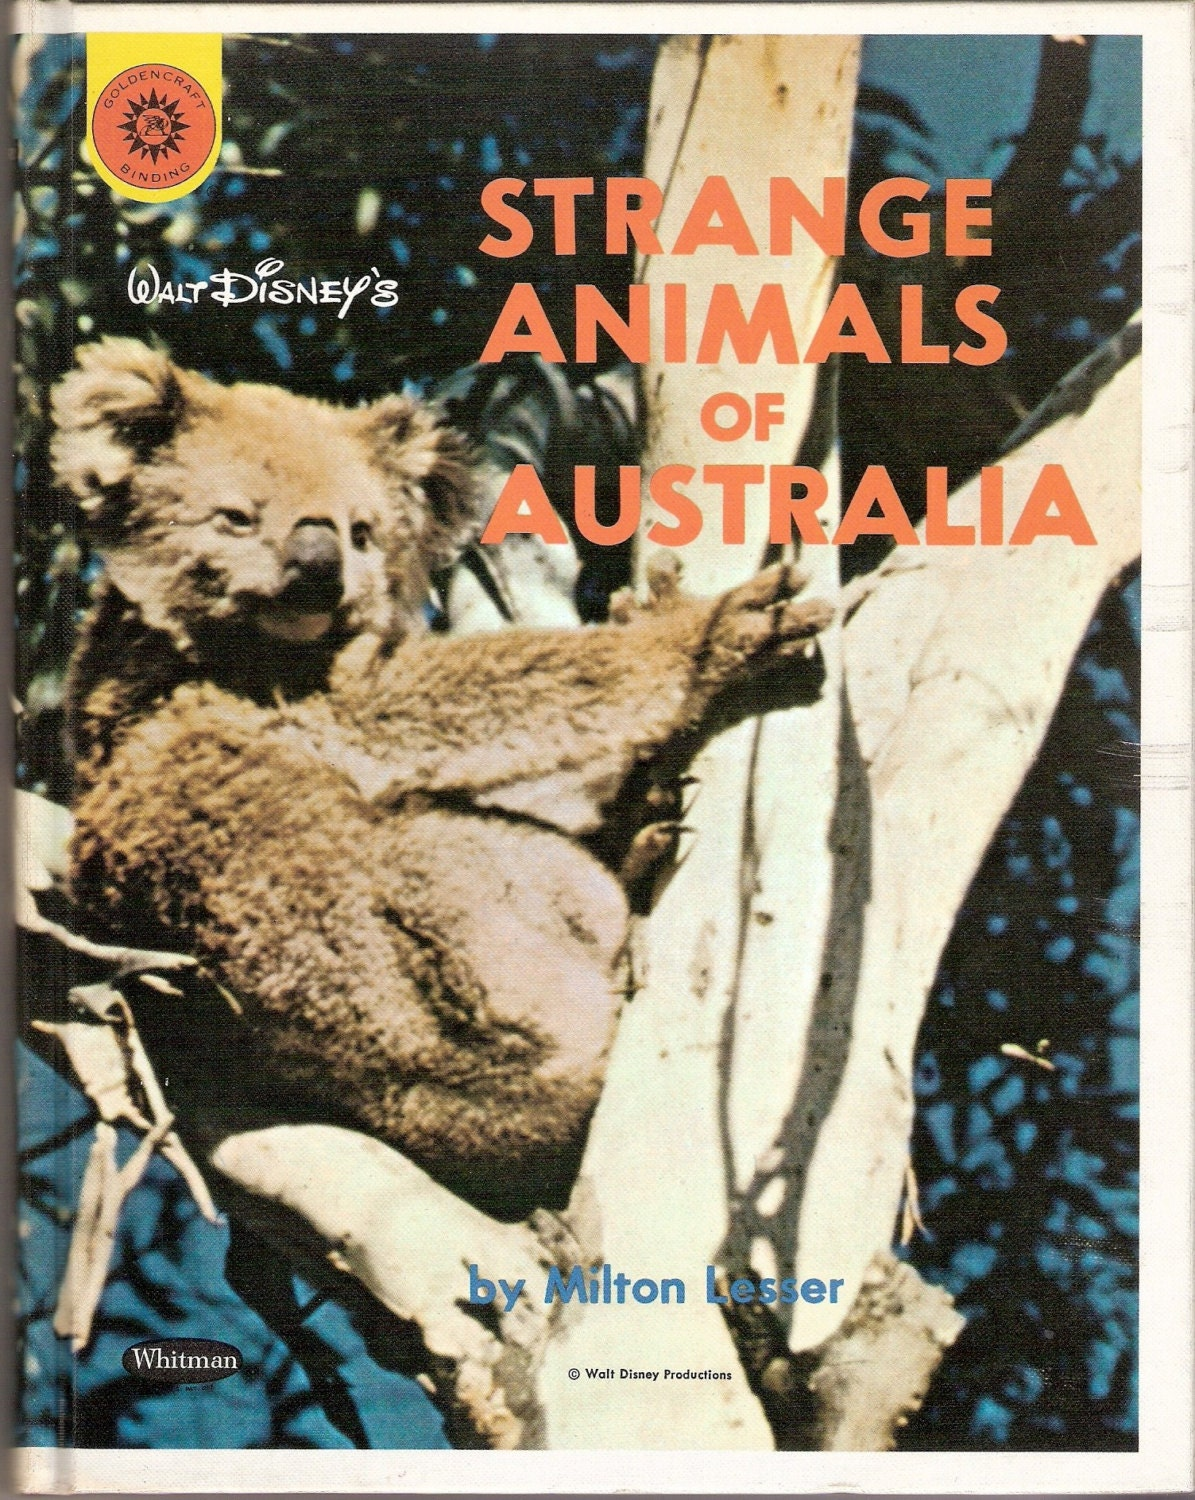 the strange animals of australia Koalas are notoriously strange little animals they're hyper-specialists, tied to the fragrant eucalyptus groves of australia, where they somehow make a.